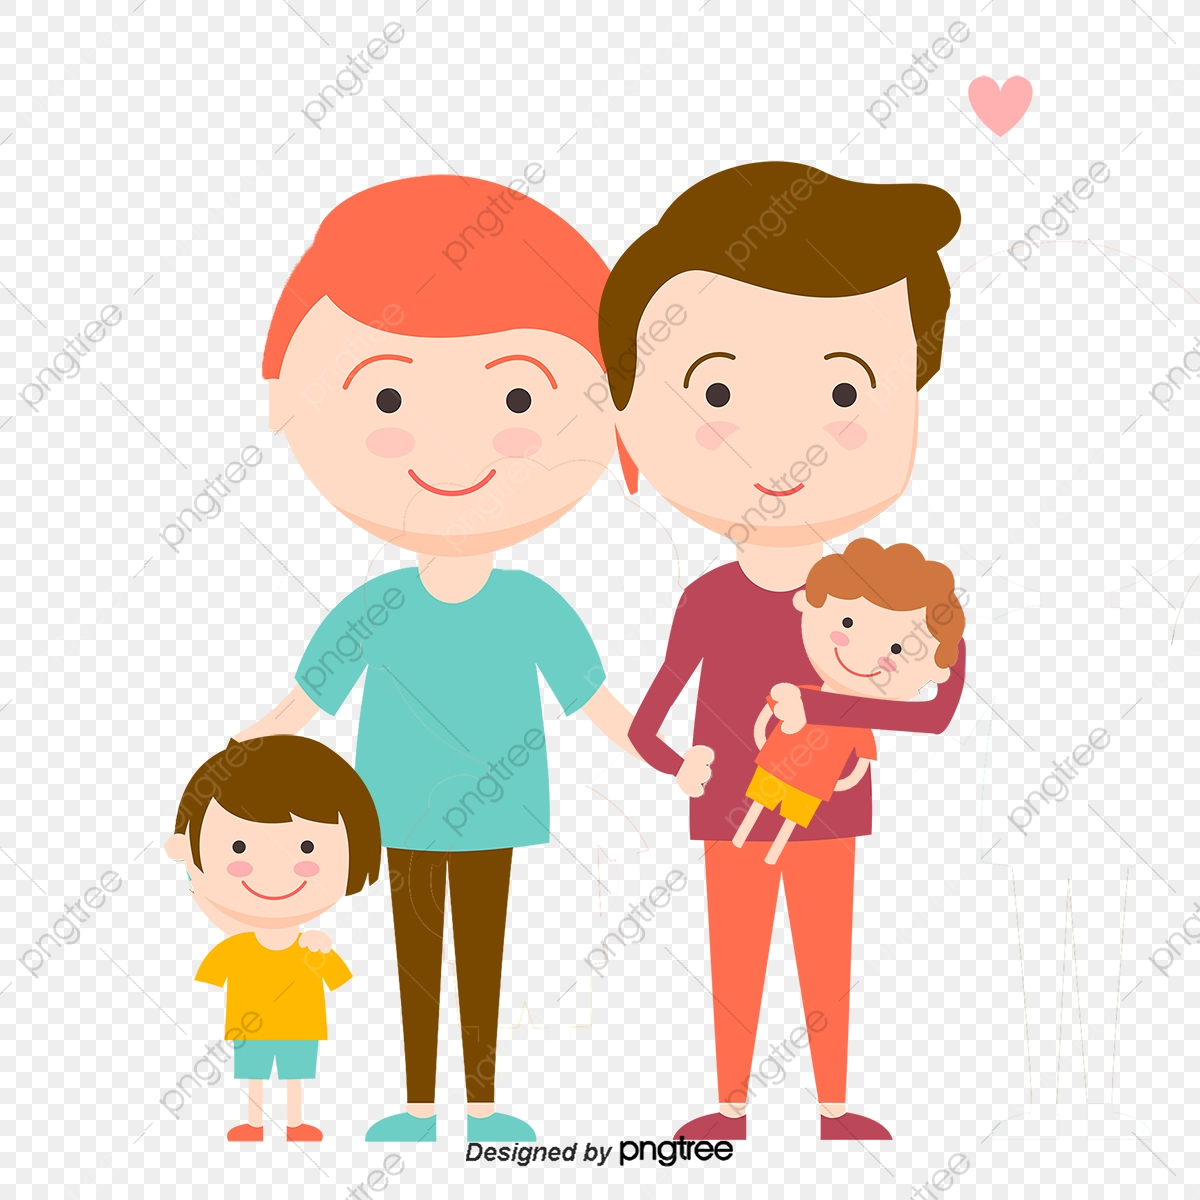 Loving Family, Family Vector, Vector Character, Illustration PNG and